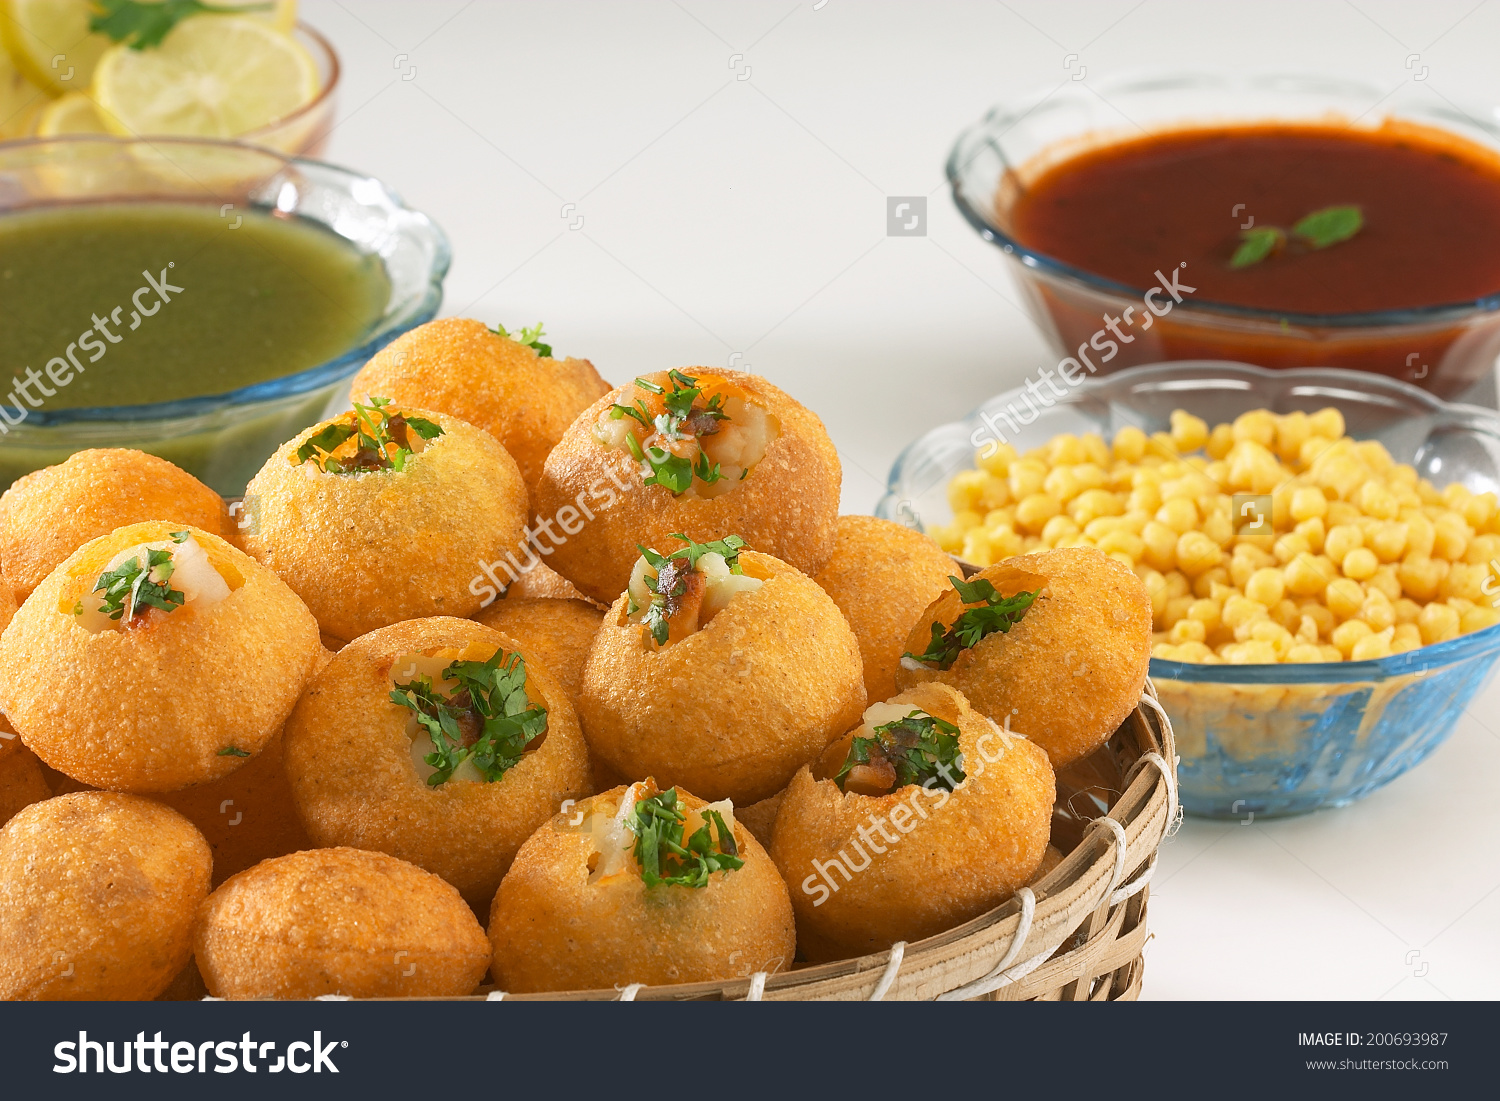 Pani Puri Golgappe Chat Item India Stock Photo 200693987.